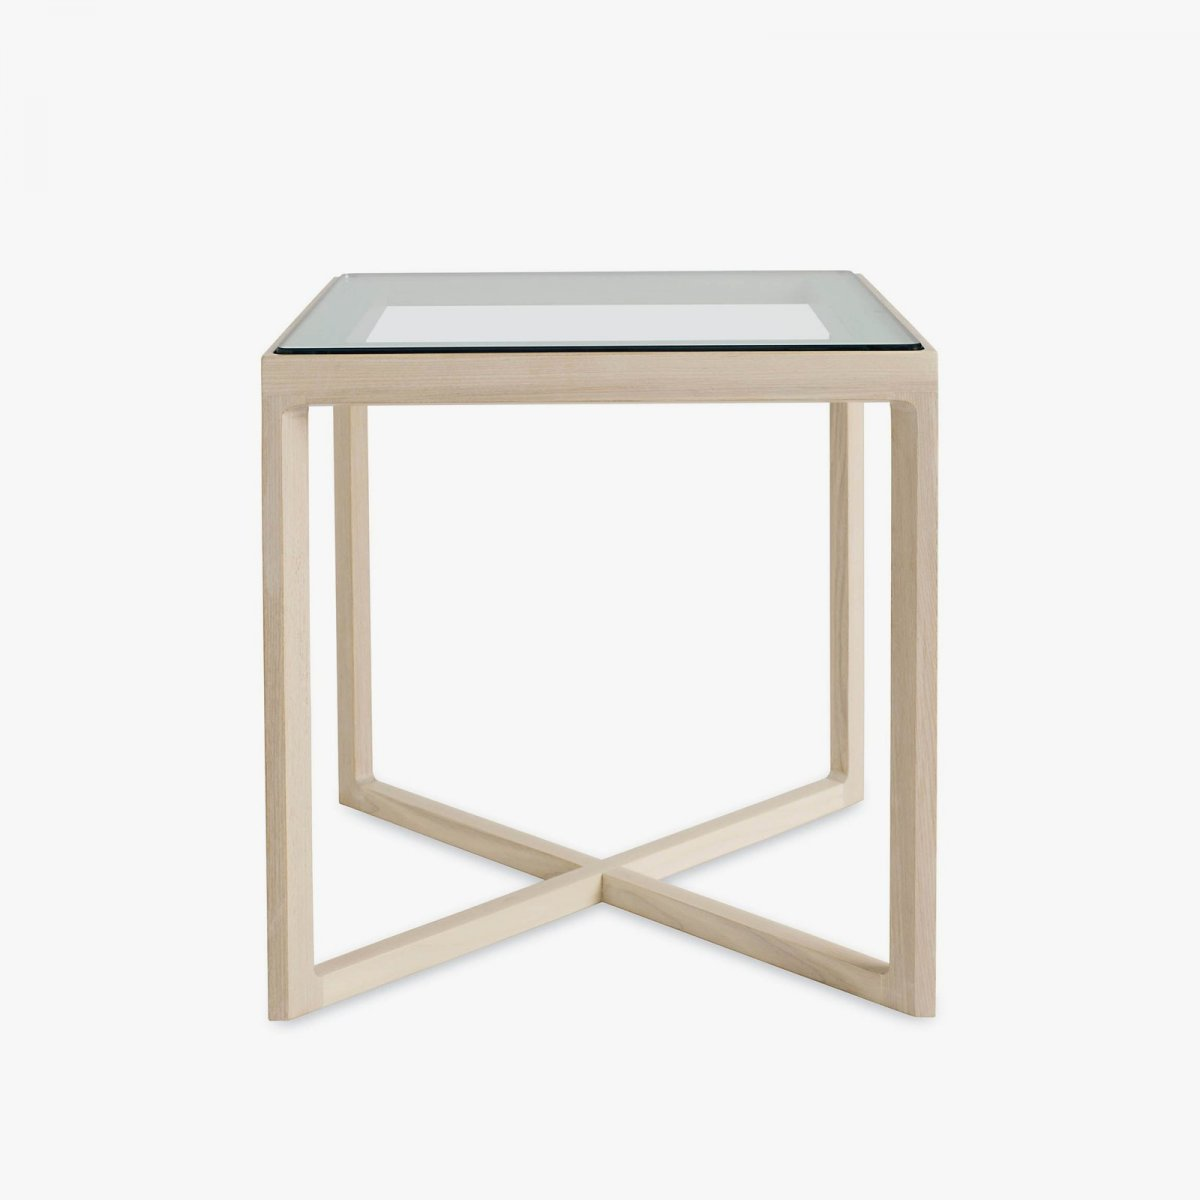 Krusin Side Table, ash + glass.